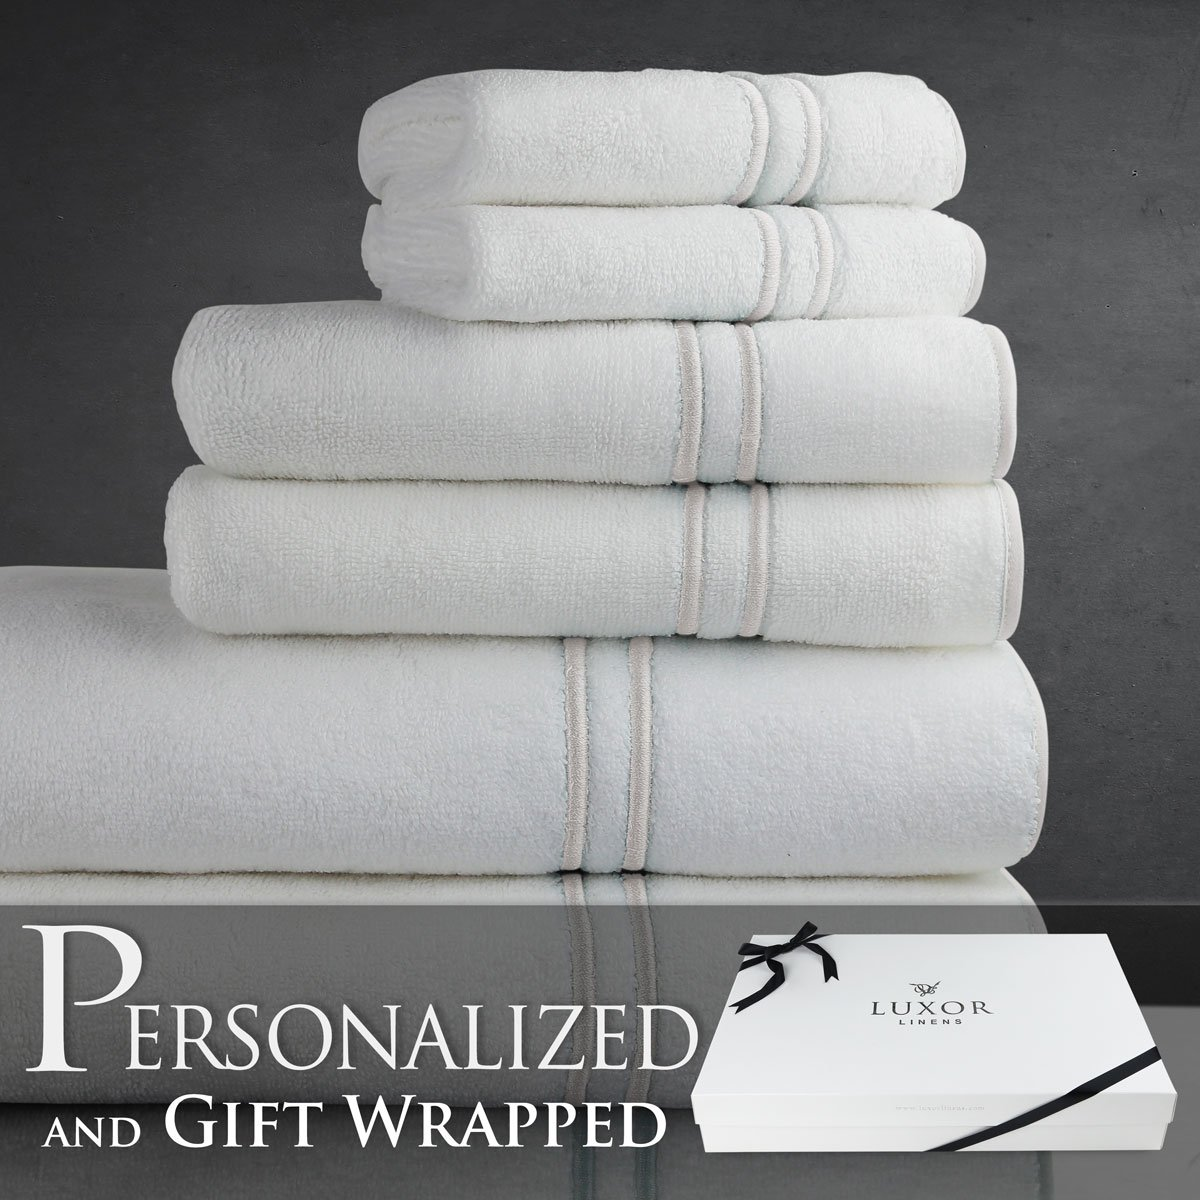 Luxor Linens New Arrival Turkish Towels Varese Collection Egyptian Cotton 6-Piece Towel Set - Pearl - Bride & Groom - Signature Gift Packaging included! The Perfect Engagement Gift!